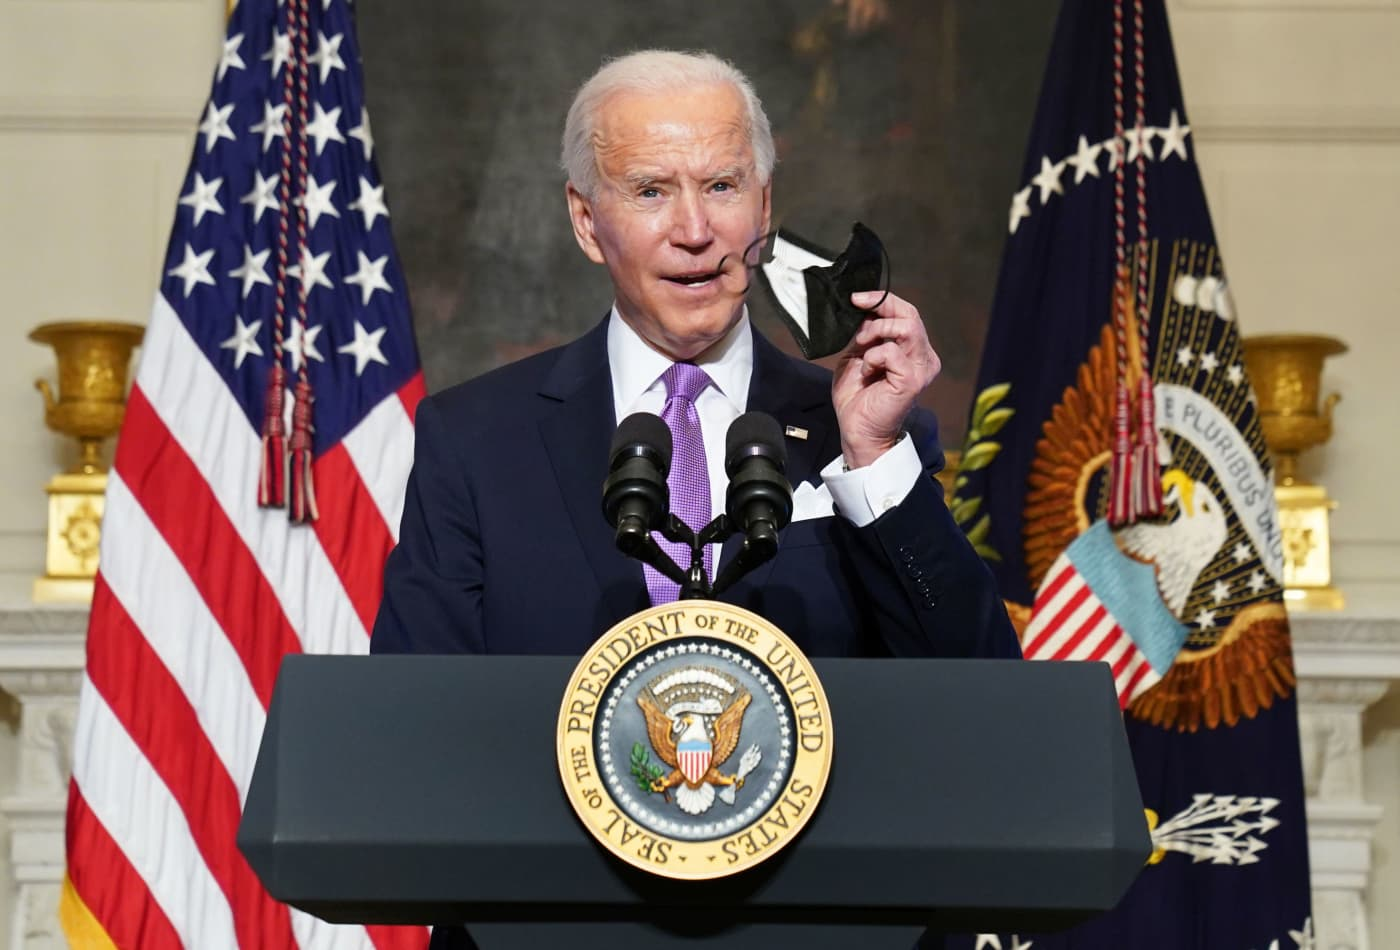 Biden to sign major executive orders on climate change